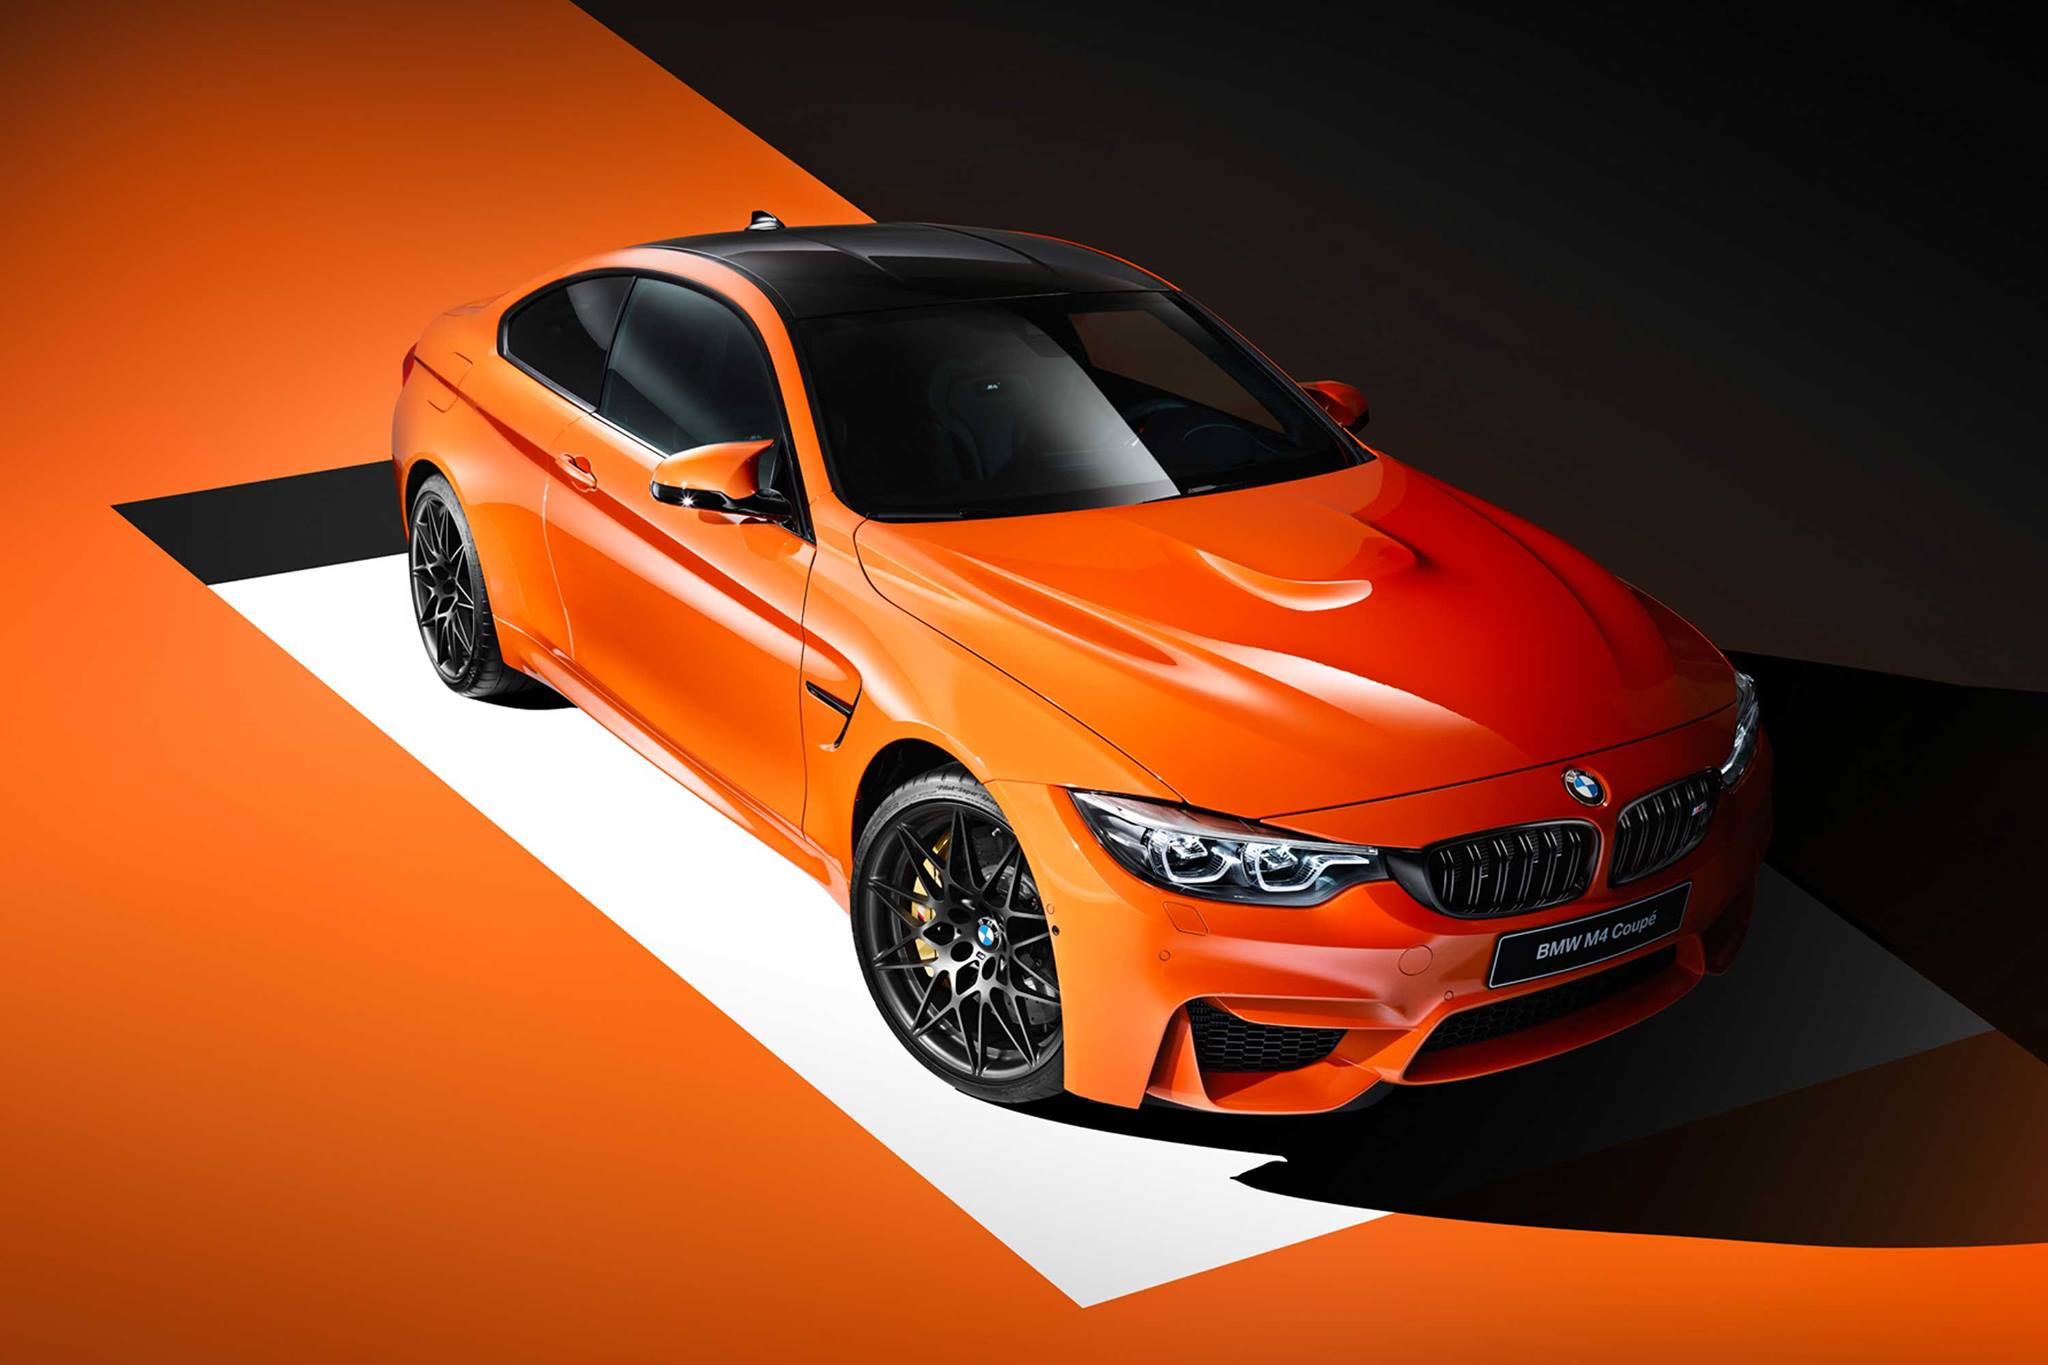 Bmw M Presents Bmw M4 Coupe Individual Fire Orange